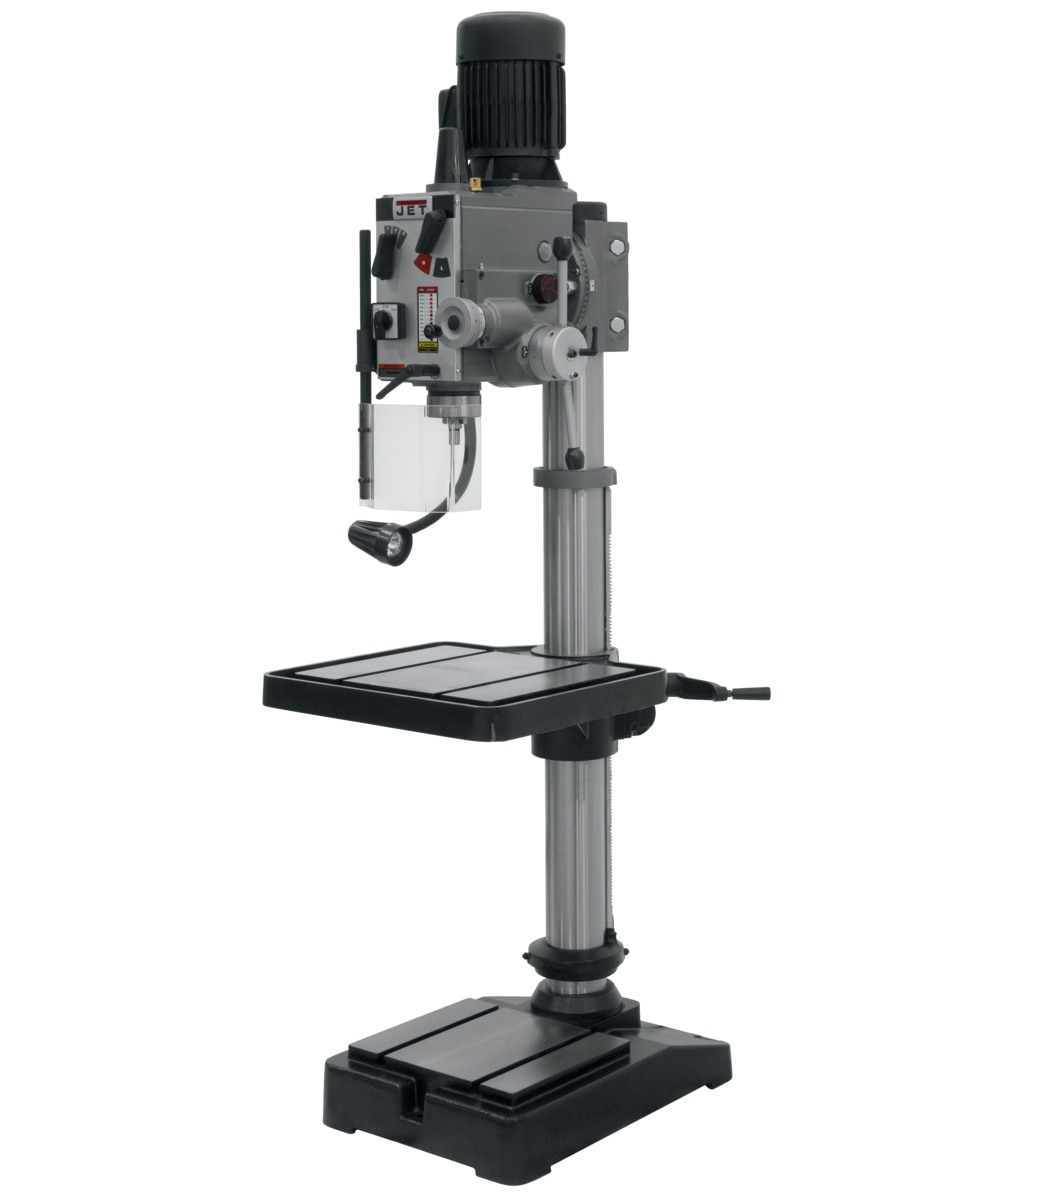 "GHD-20PF, 20"" Gear Head Drill Press With Power Down feed 230V, 3Ph"